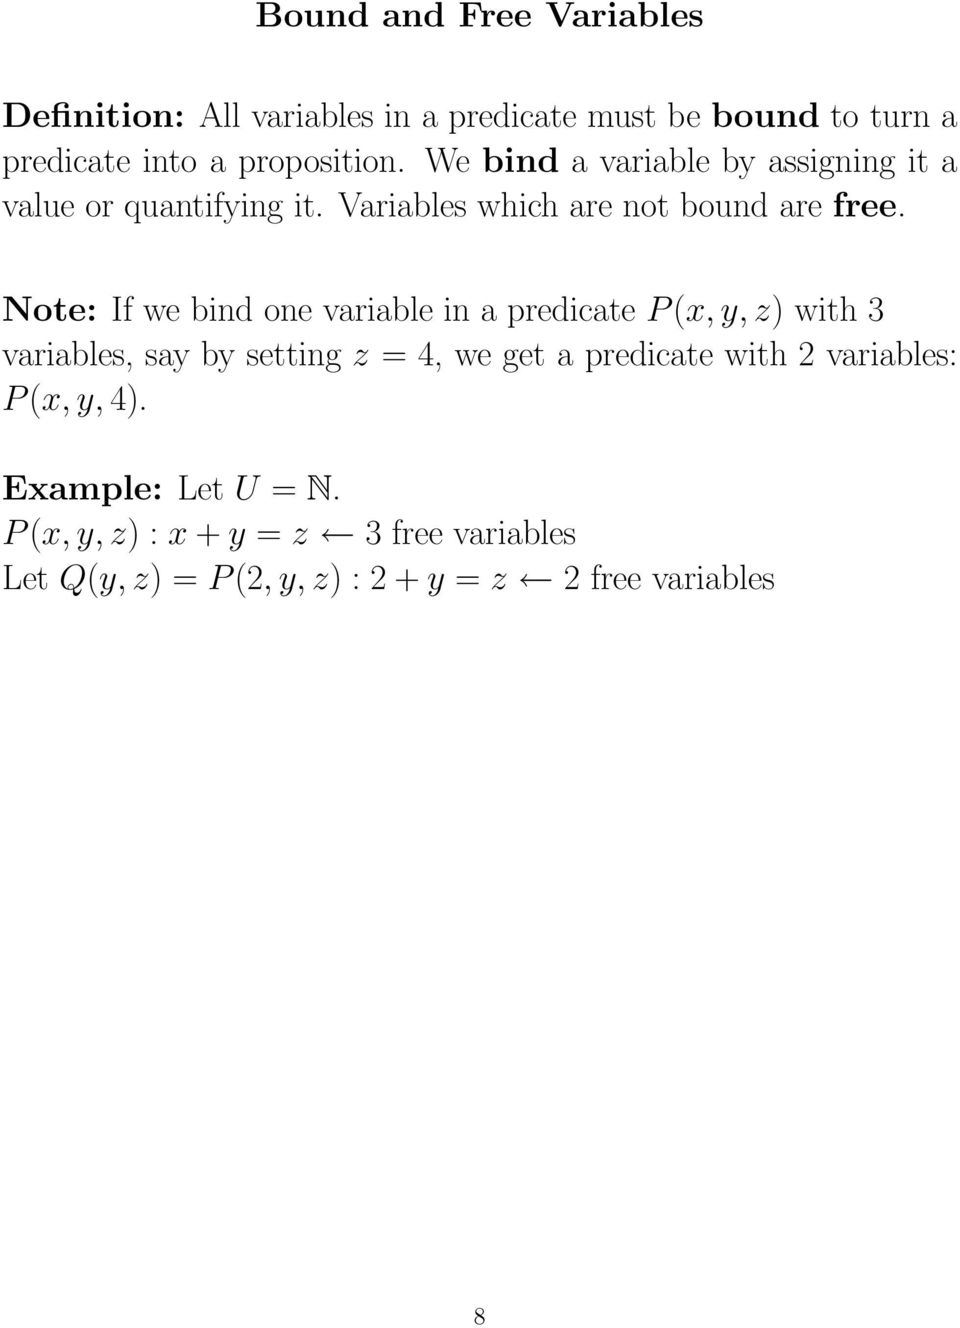 Note: If we bind one variable in a predicate P(x, y, z) with 3 variables, say by setting z = 4, we get a predicate with